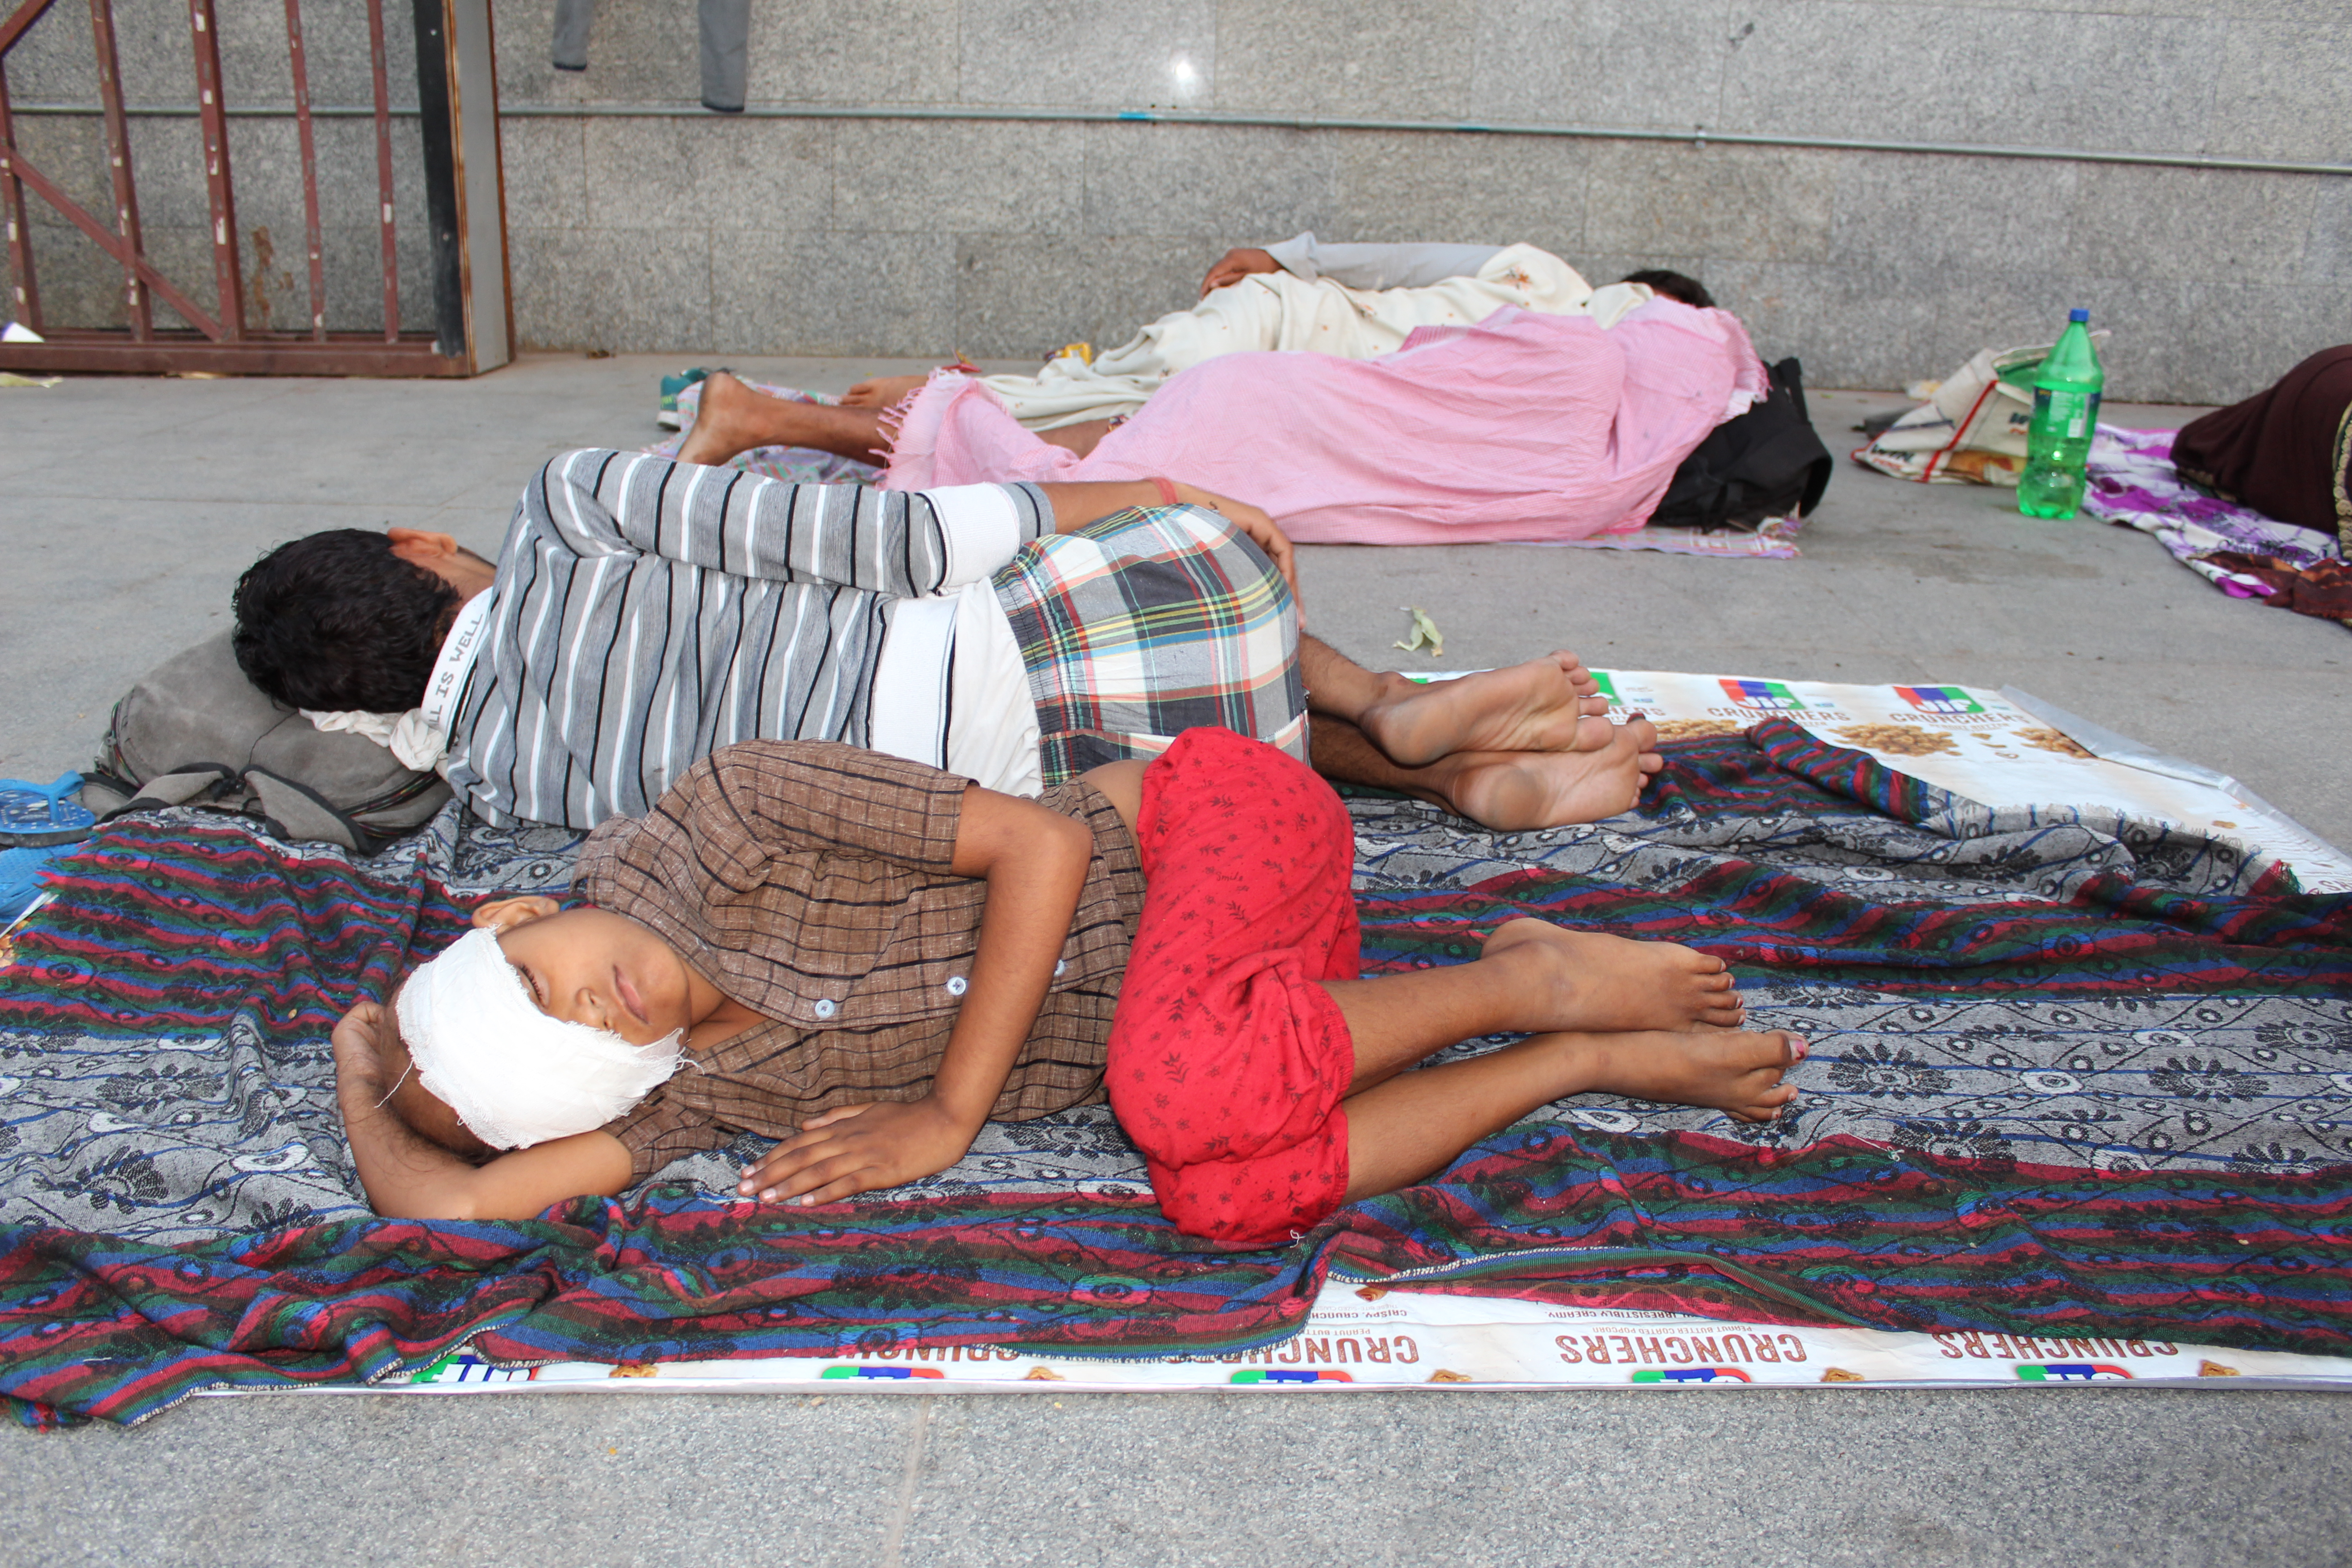 Nine-year-old Mohini who has cancer in her right eye, has been sleeping with her uncle and grandmother outside a metro station near the All India Institute of Medical Sciences. (Photo: Ankur Paliwal)